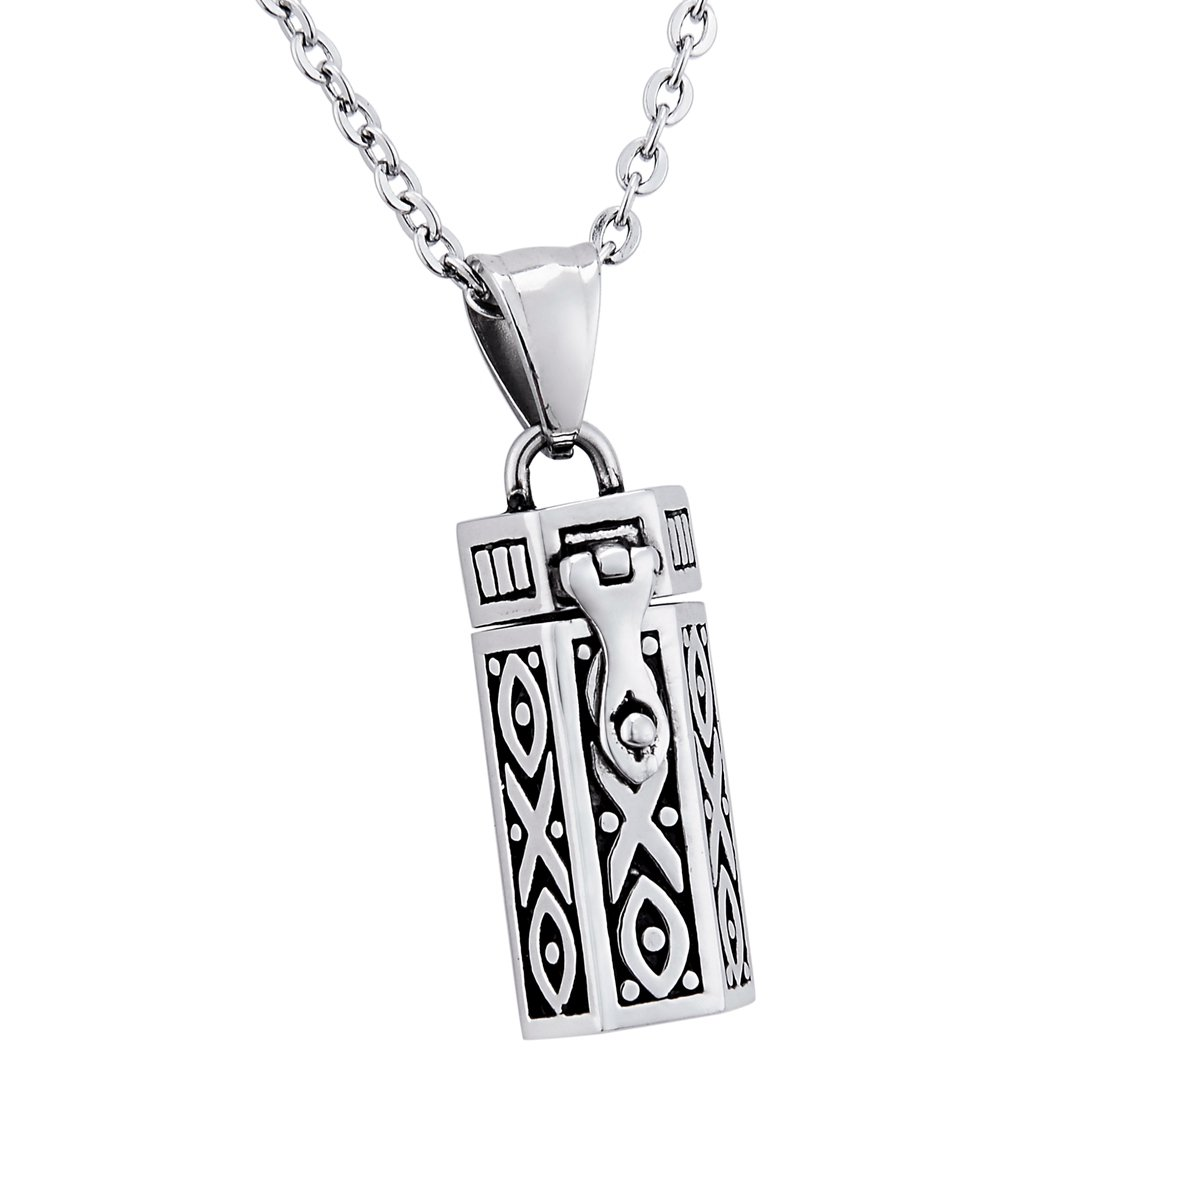 Stainless Steel Cuboid Prayer Box Locket Pendant Necklace Memorial Jewelry Supreme glory B0734WDNT1_US